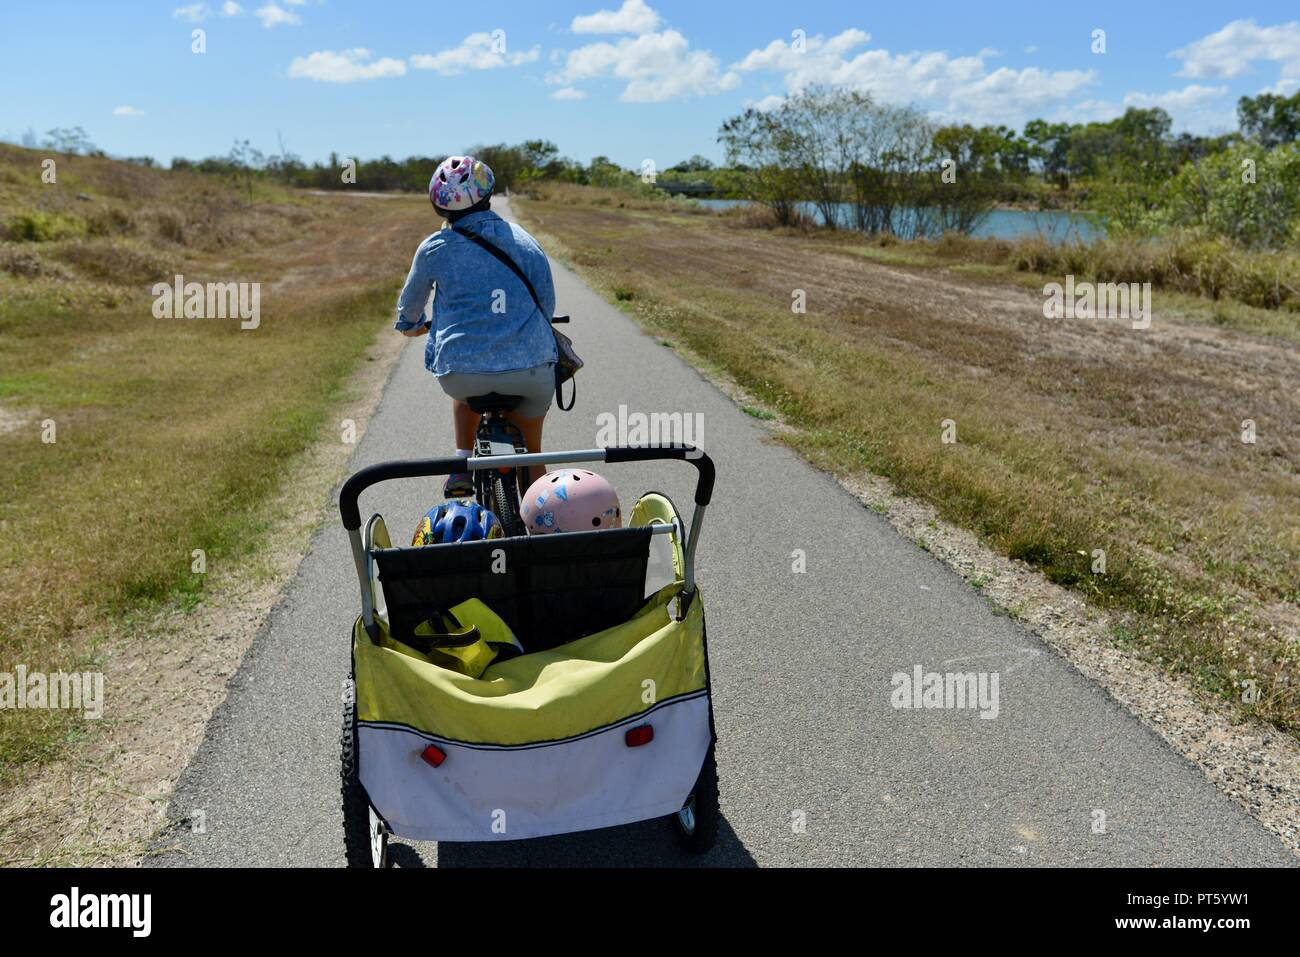 Woman riding a bicycle with a bicycle trailer for children, Townsville, QLD, Australia Stock Photo